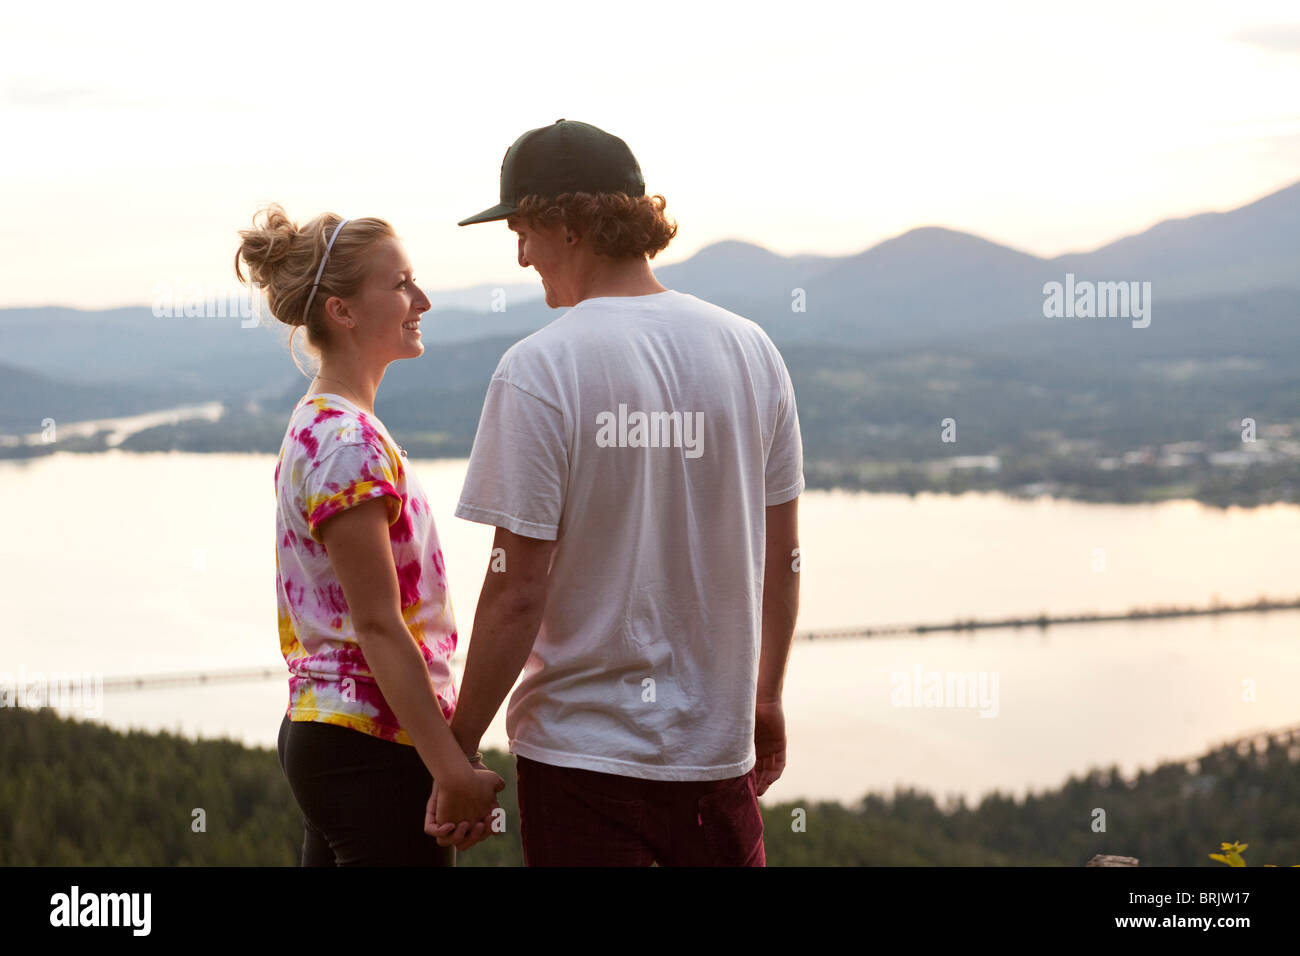 A young adult couple hold hands and smile at sunset overlooking a large lake. - Stock Image